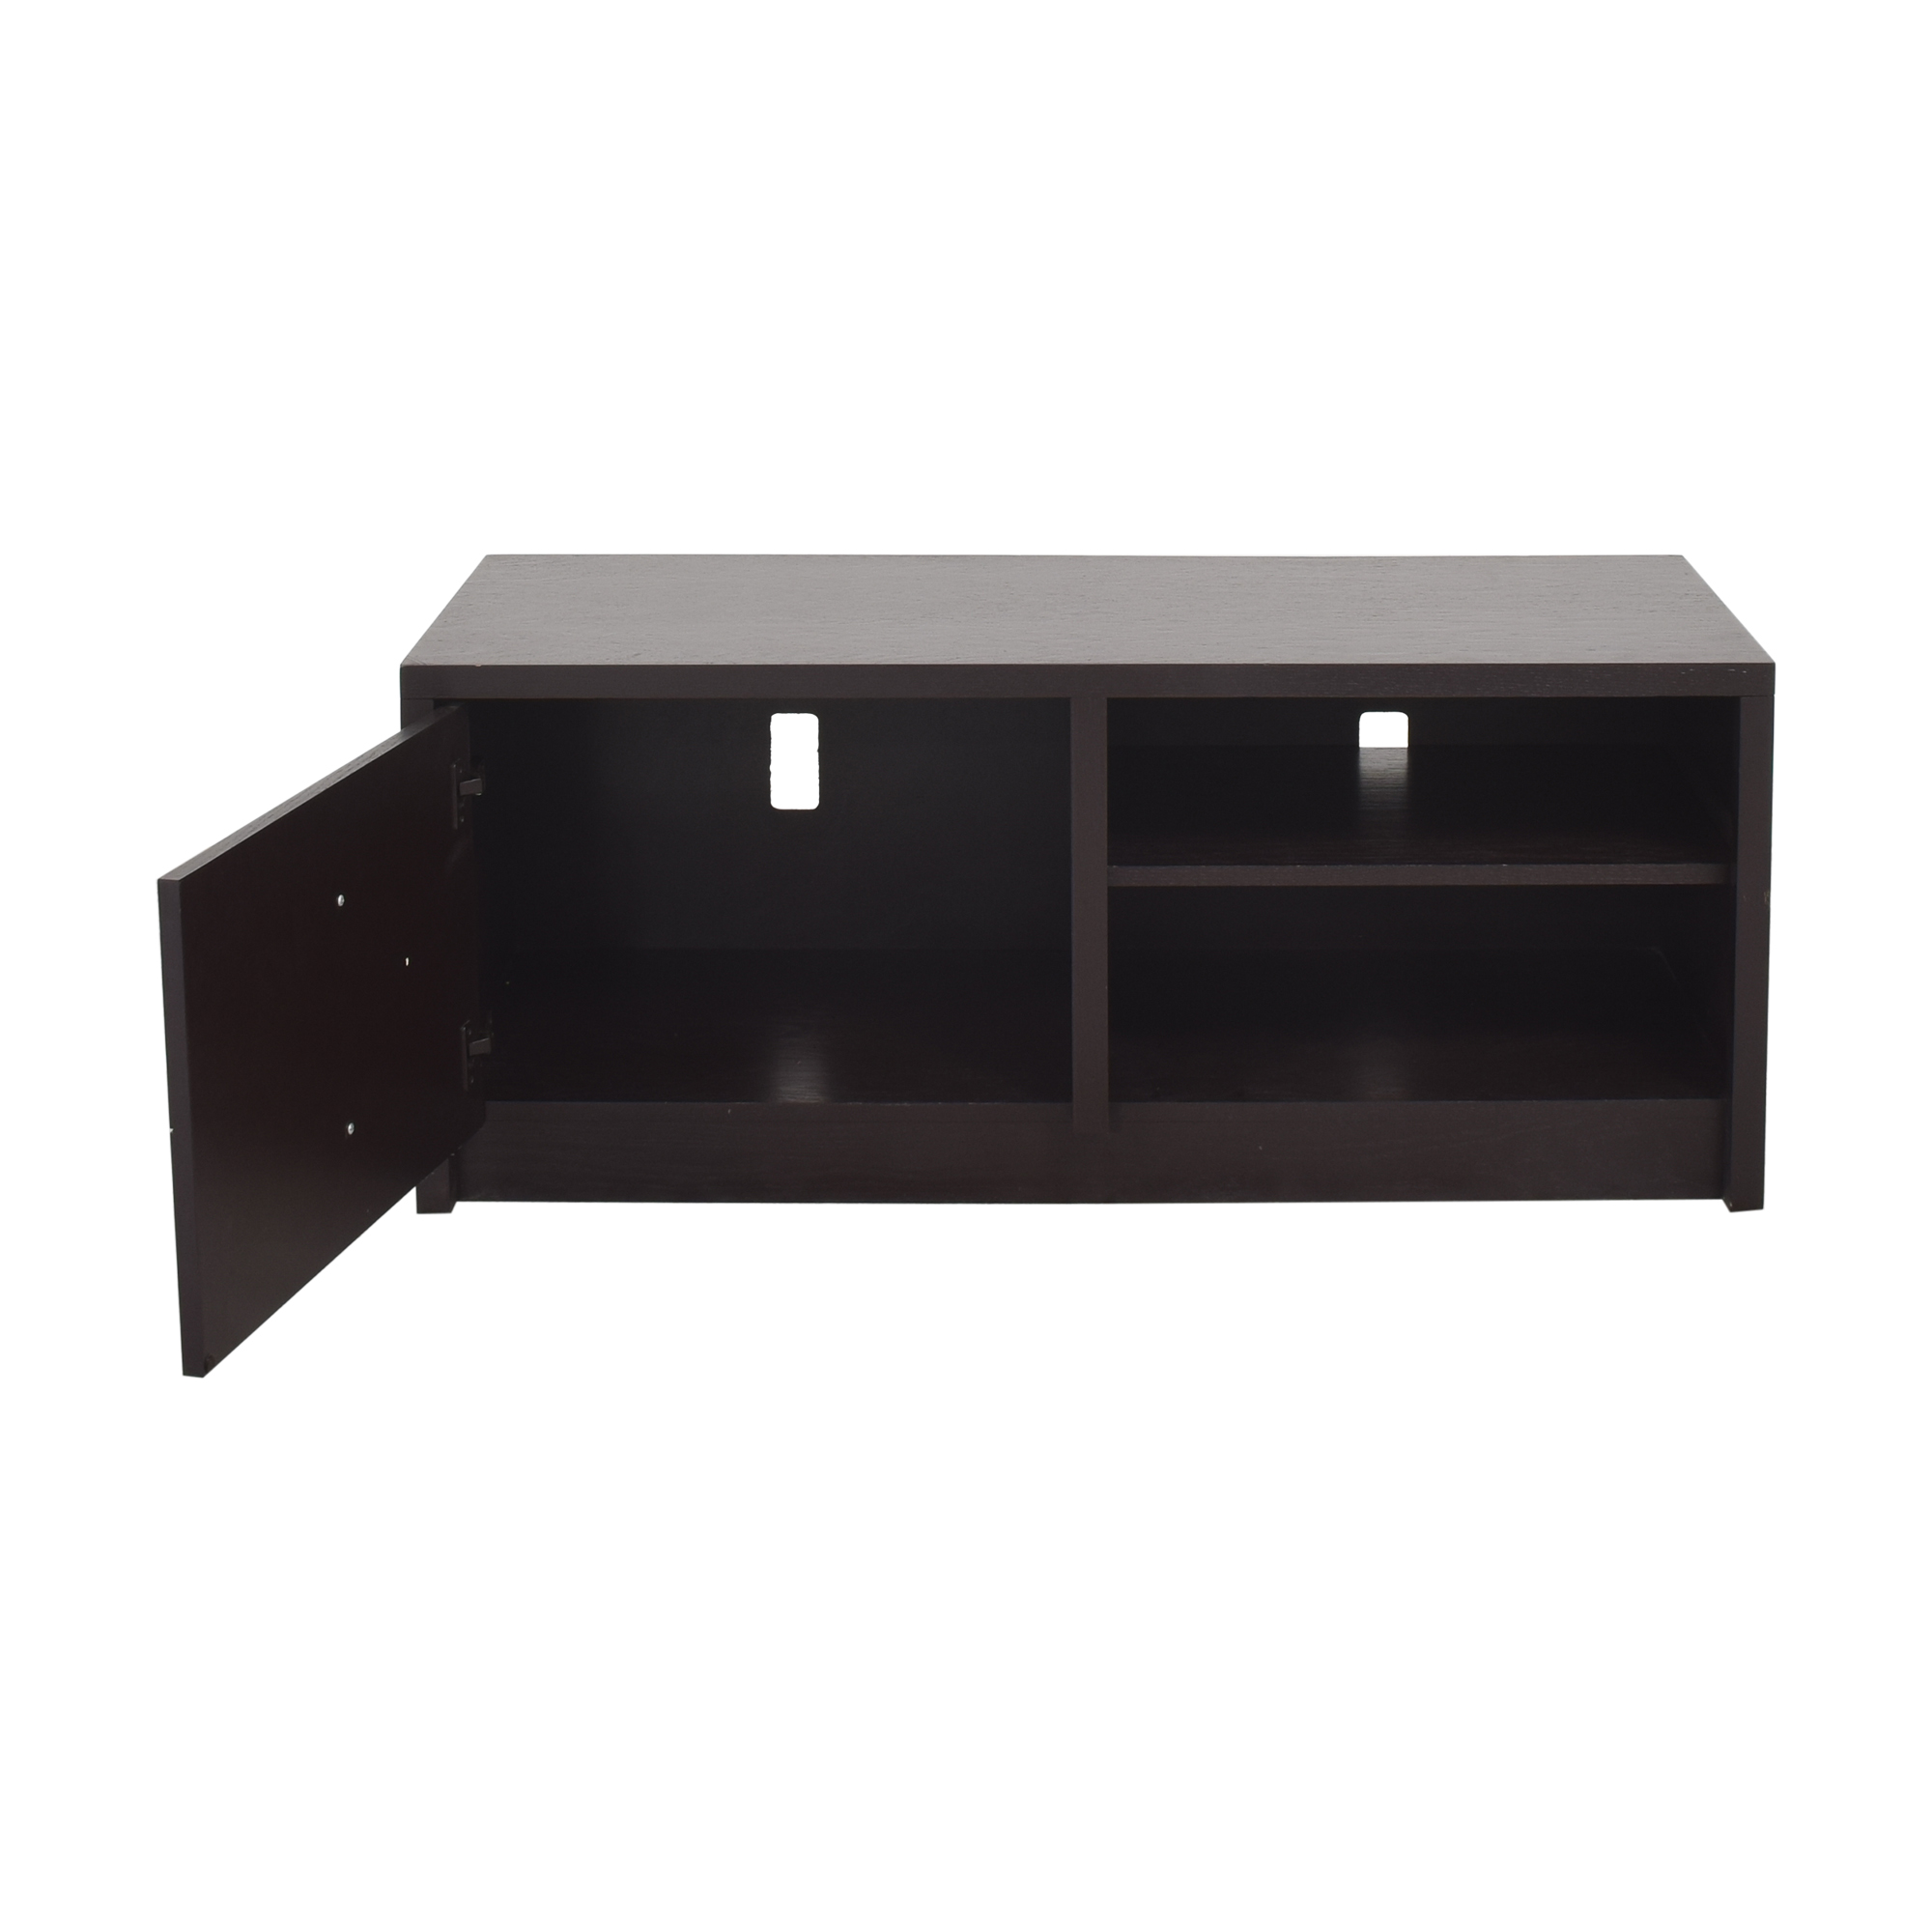 buy Pottery Barn Pottery Barn Entertainment Console online